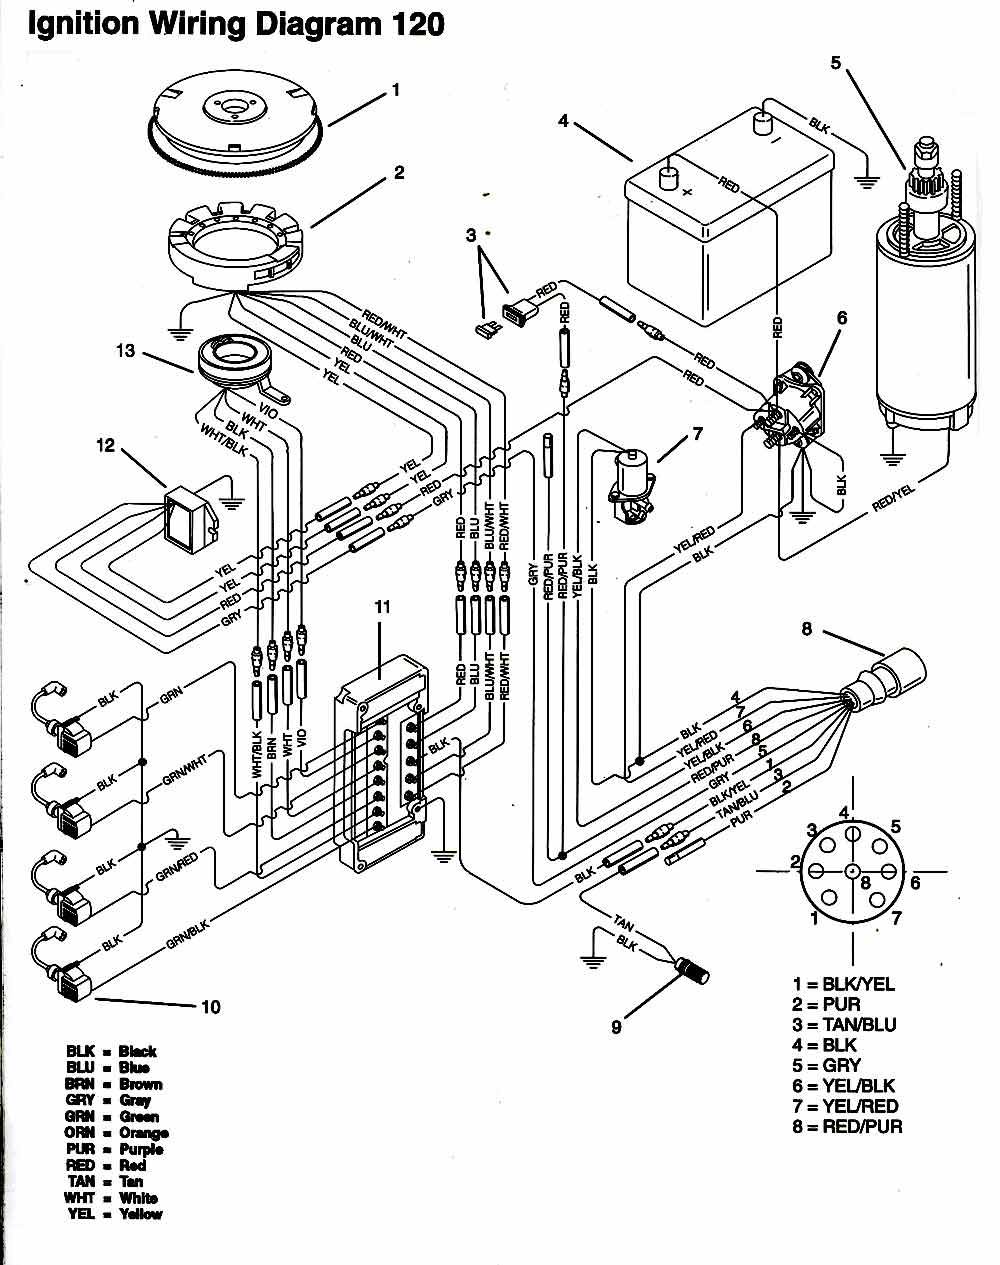 99 Yamaha Outboard Wiring Library Diagram For Tach Chrysler Diagrams Mastertech Marine Rh Maxrules Com